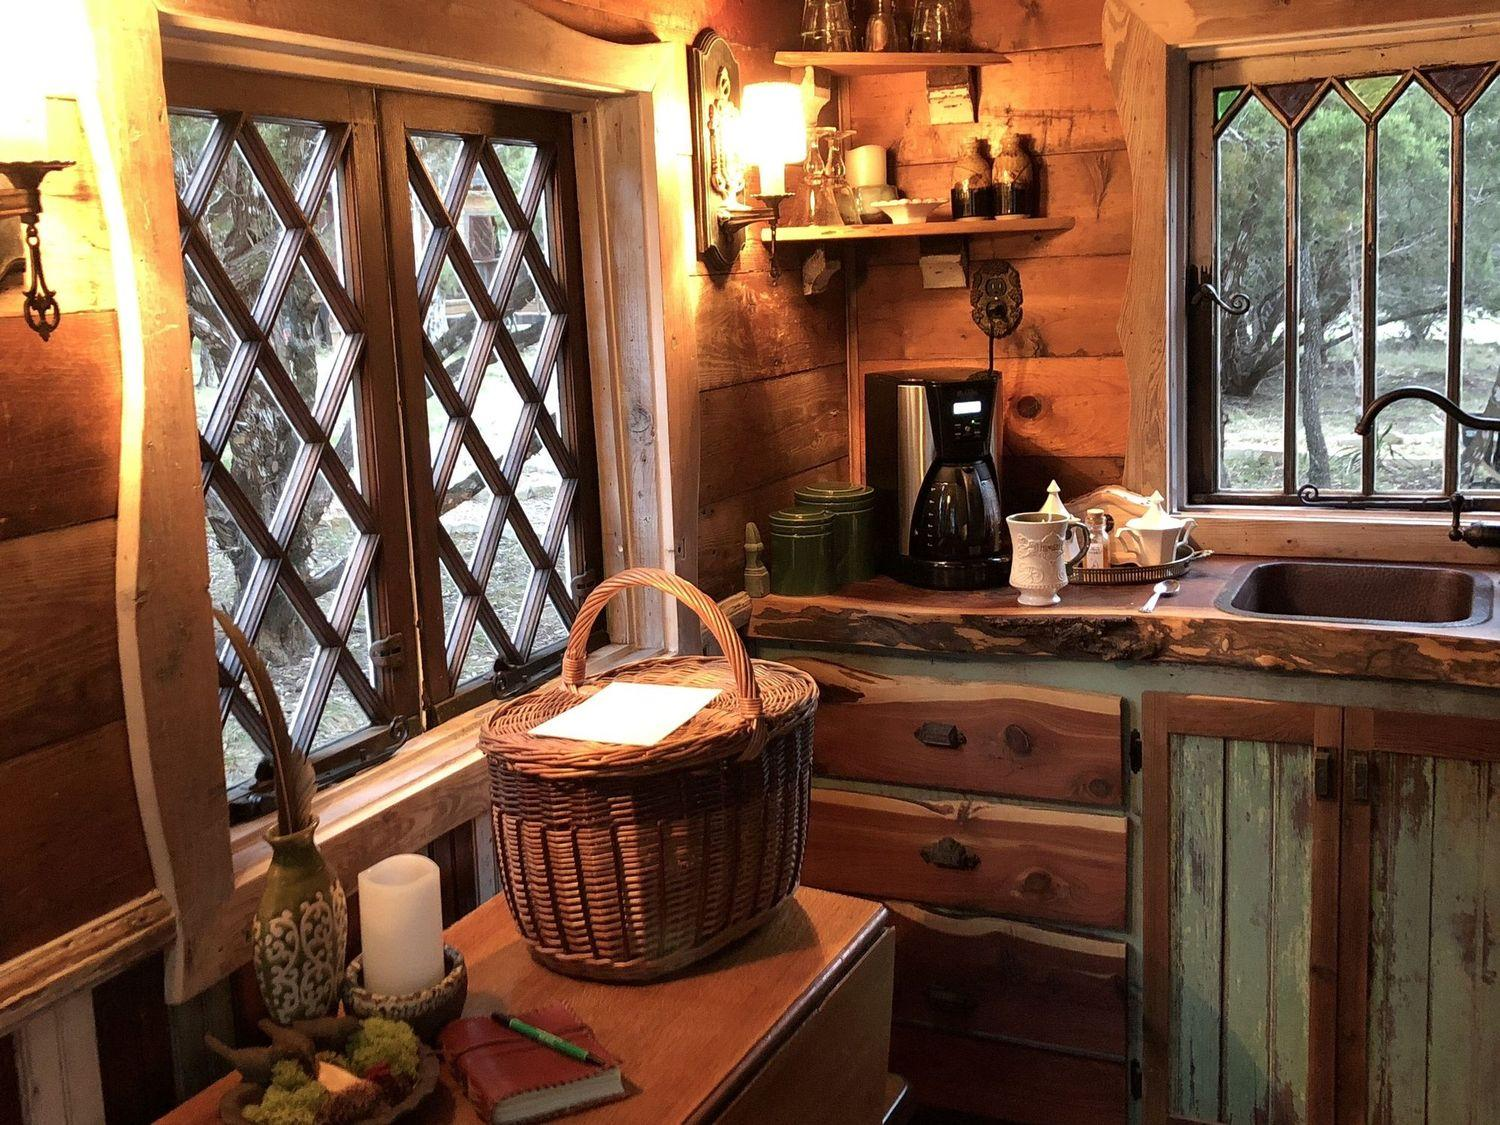 Robin Hood's Hideout - A whimsical, storybook cottage built with reclaimed shiplap, antique English stained glass and cedar.